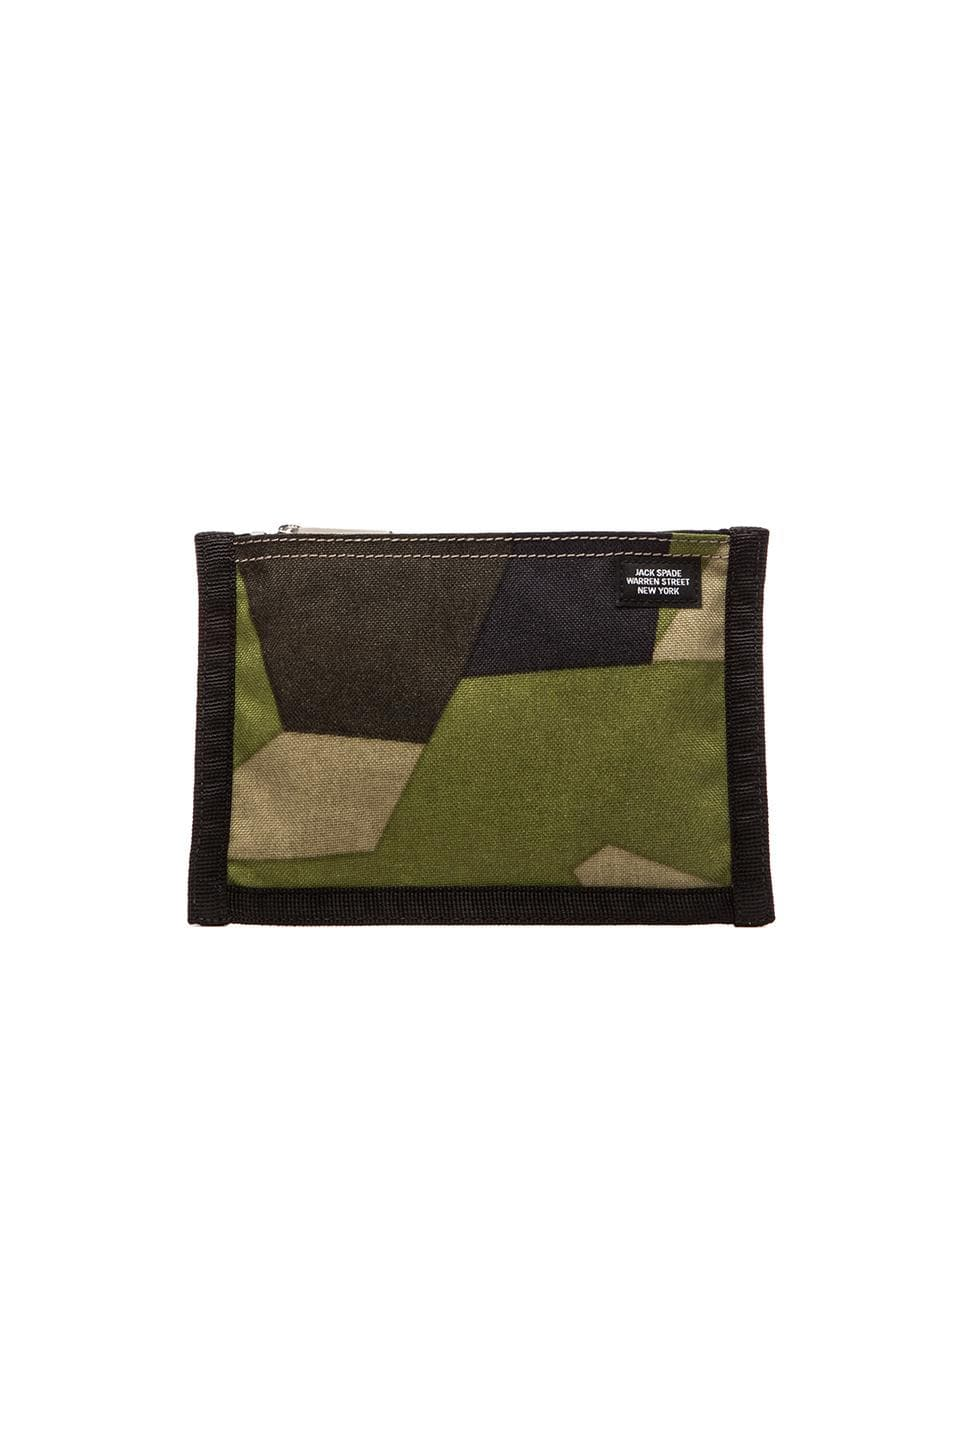 Jack Spade A5 Swedish M90 Camo Pouch in Green